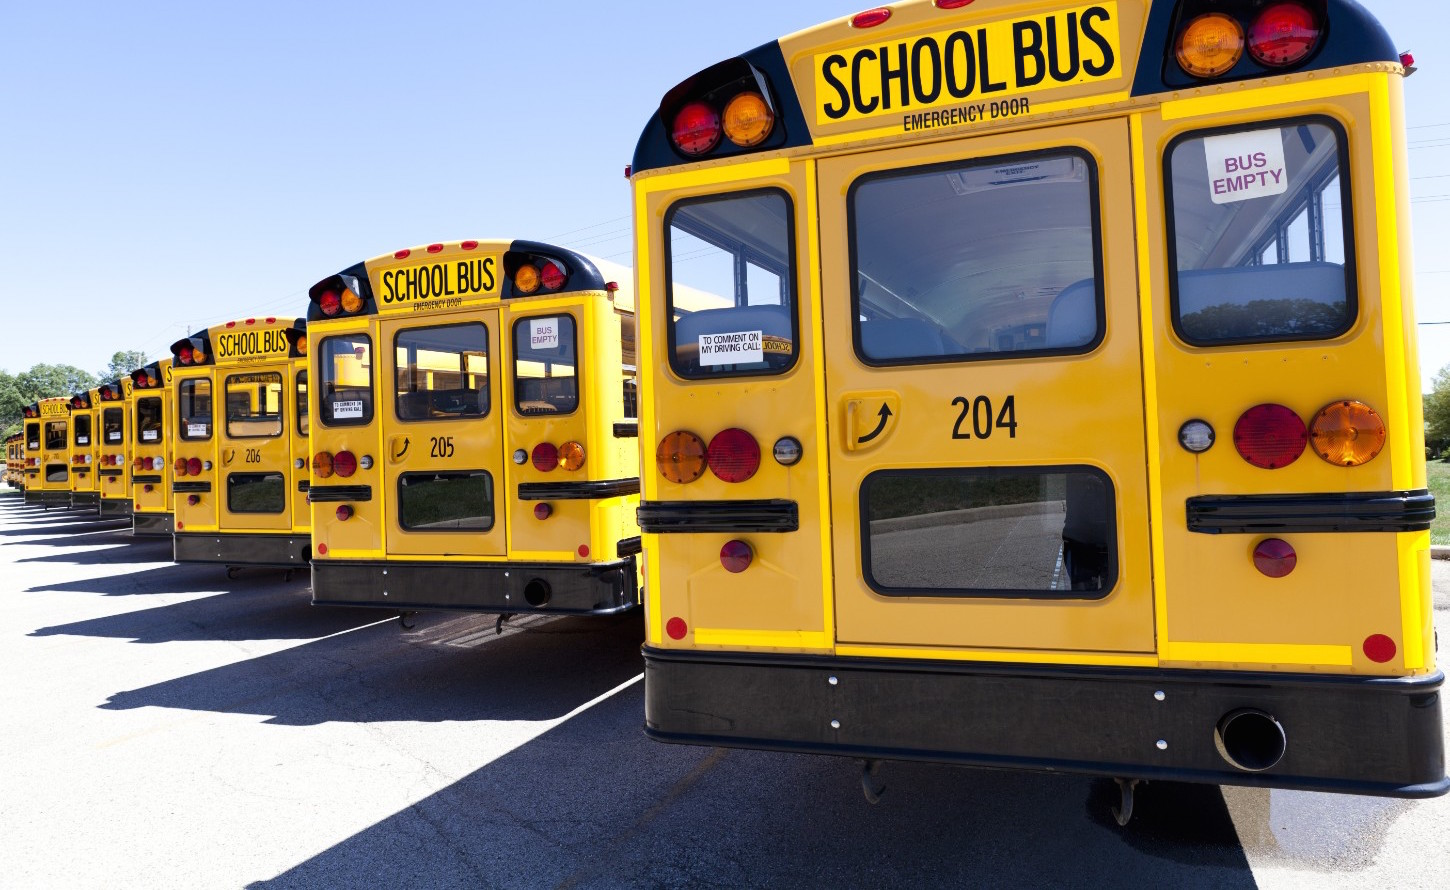 Rent a bus for a school trip